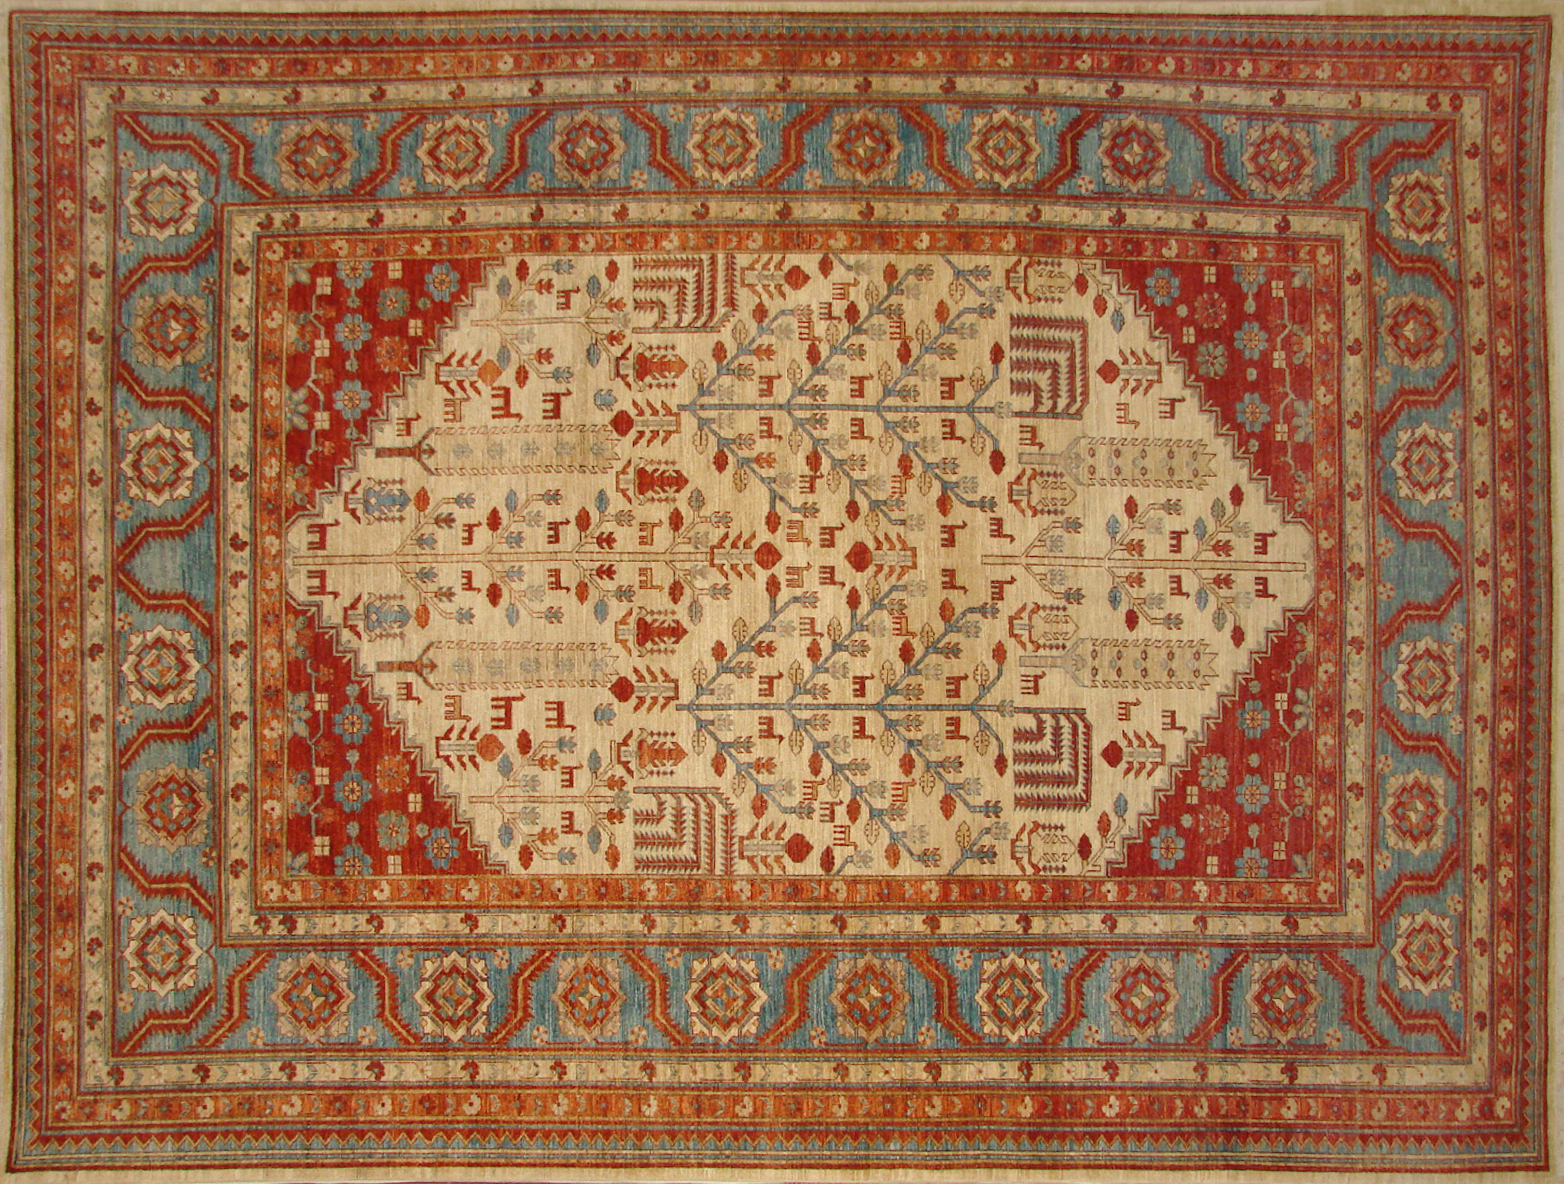 10x14 Antique Revival Hand Knotted Wool Area Rug - MR19566